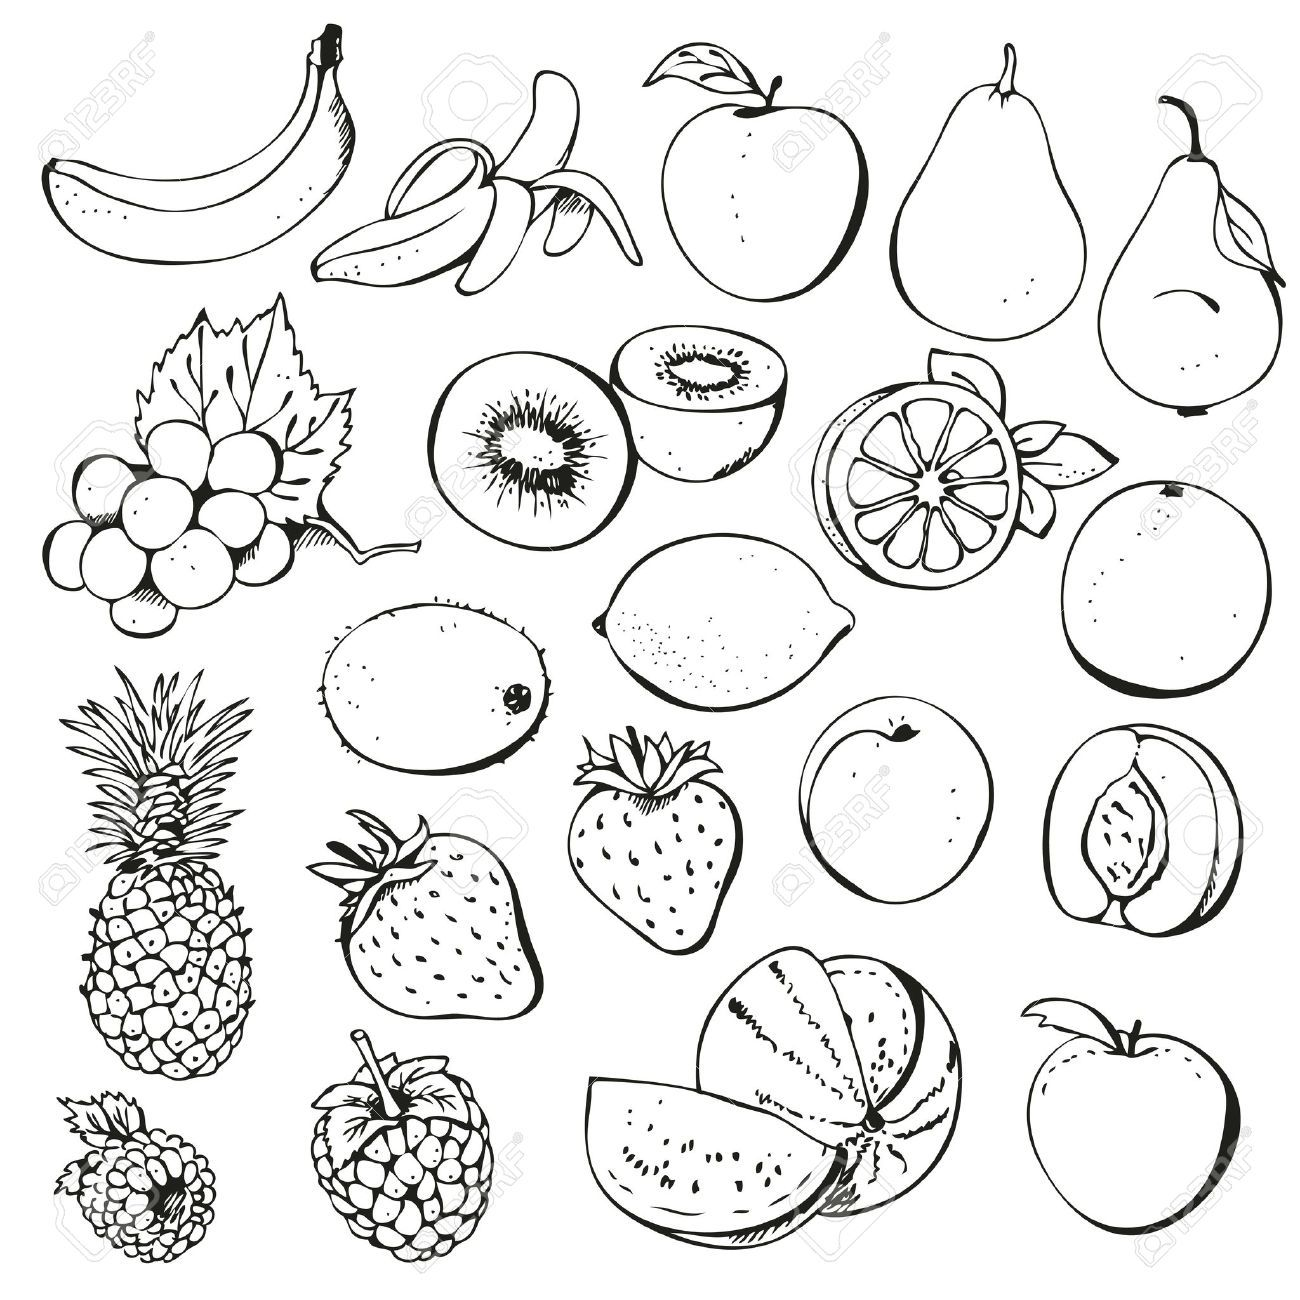 clip art black and white fruit of the spirit - Google Search